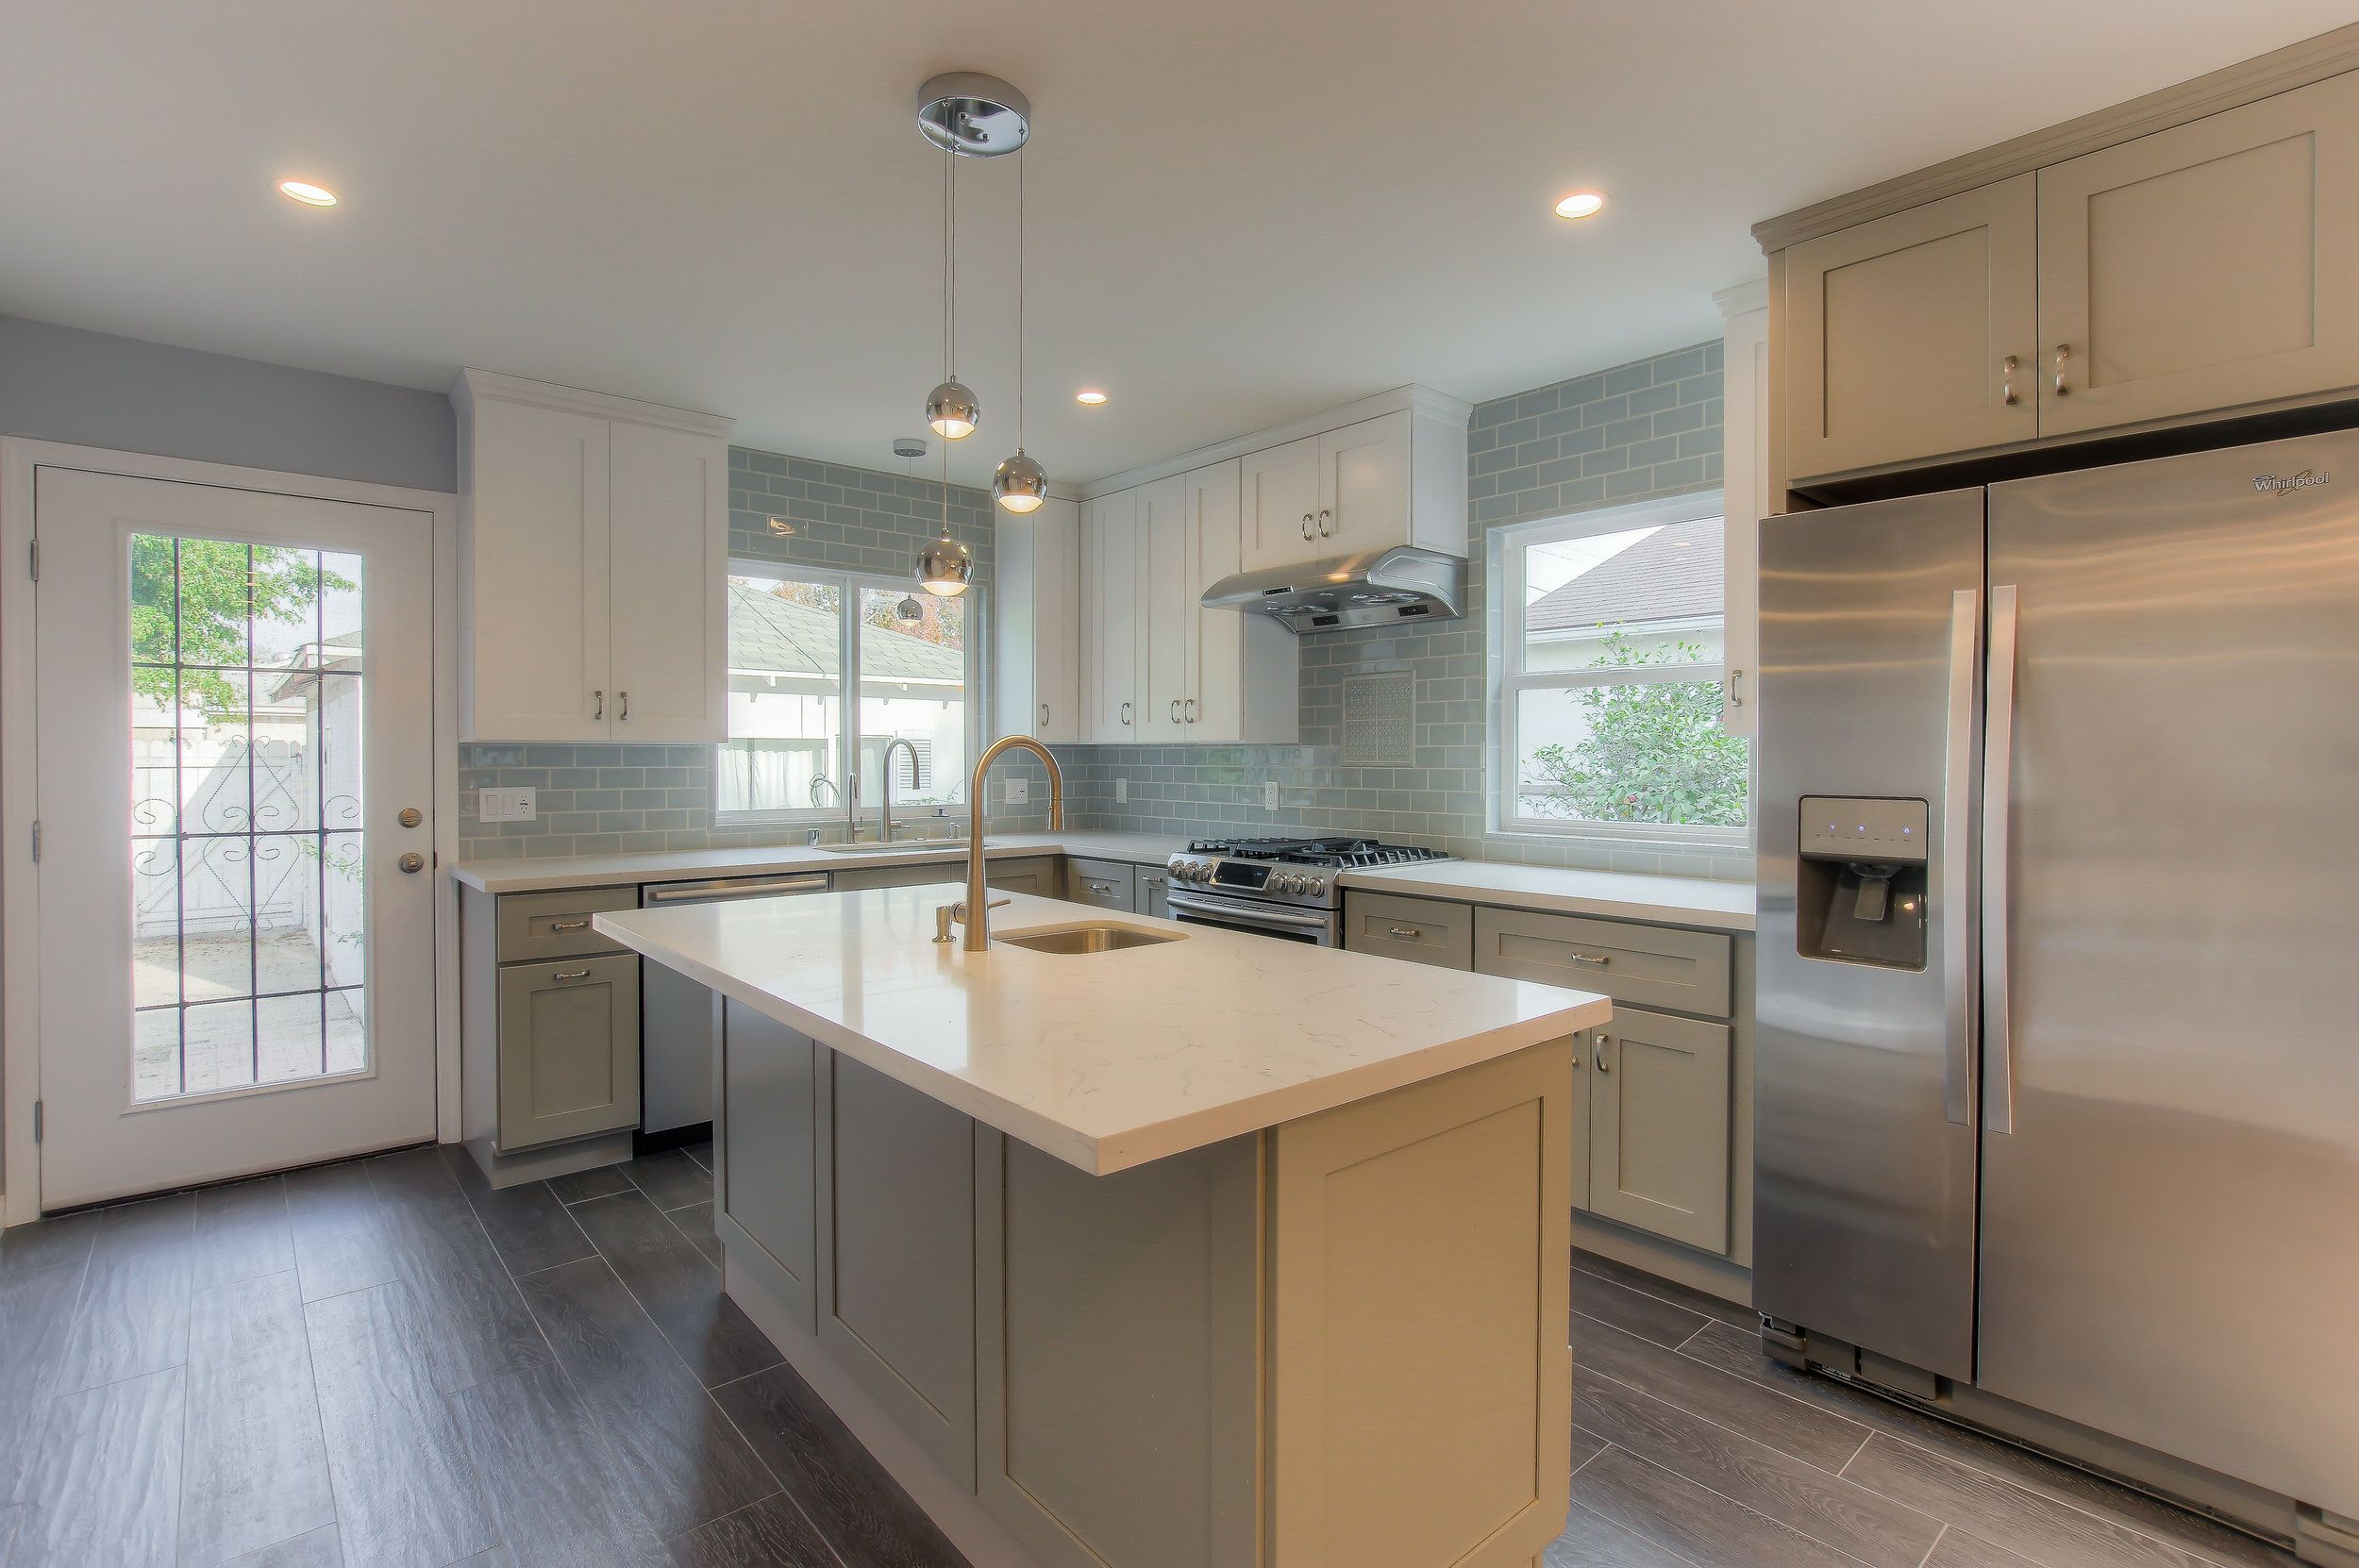 Cheviot Hills Kitchen Remodel  Kitchen Designs  Pinterest  Los Classy How To Design A Kitchen Remodel Review